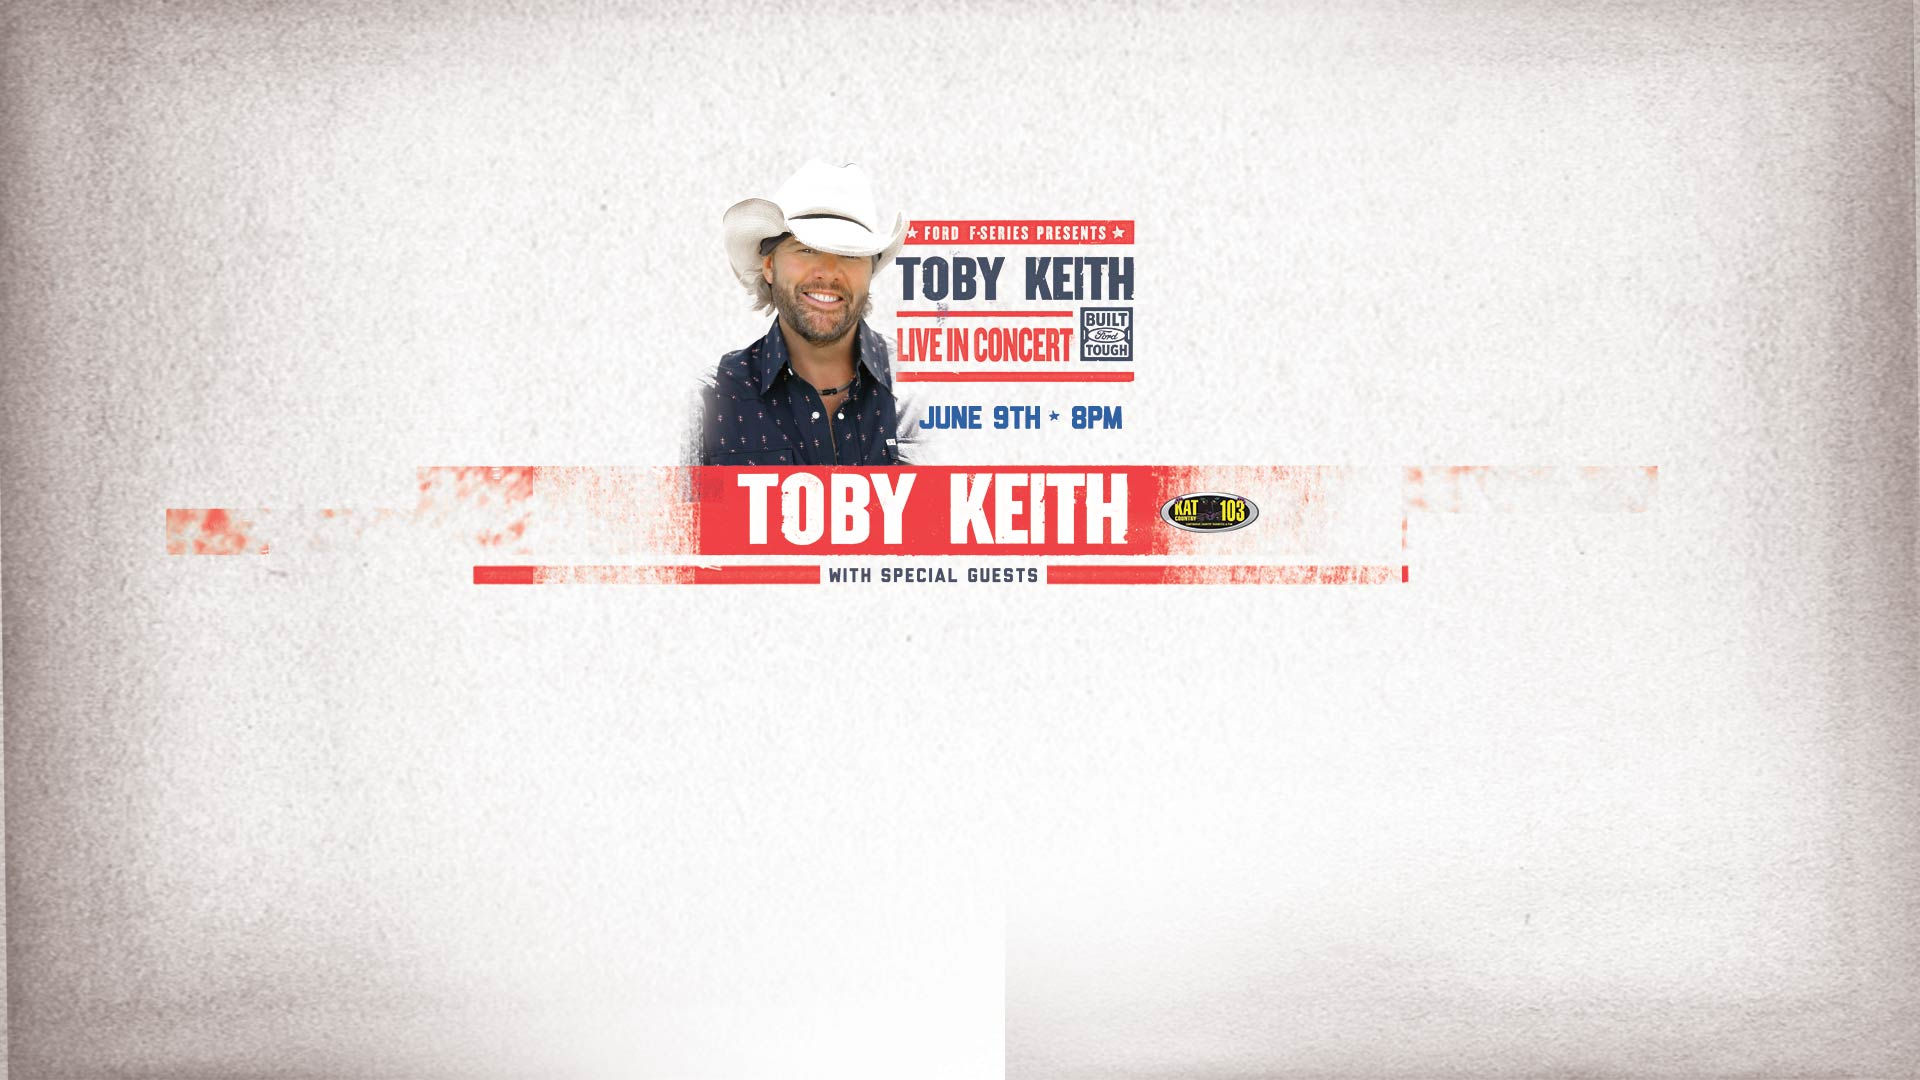 TobyKeith-bac4